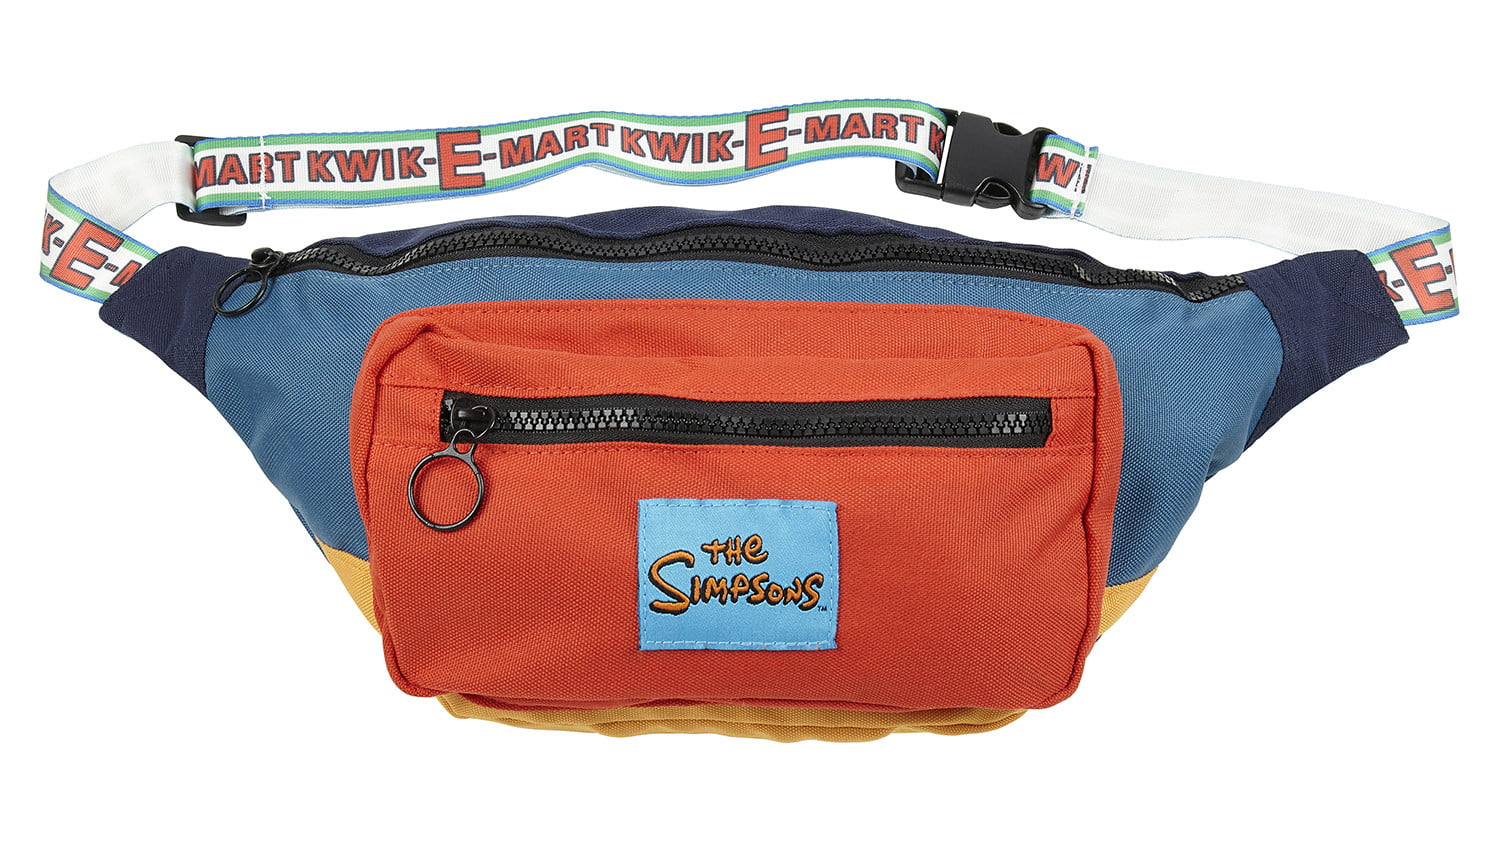 asos x the simpsons collection fannypack